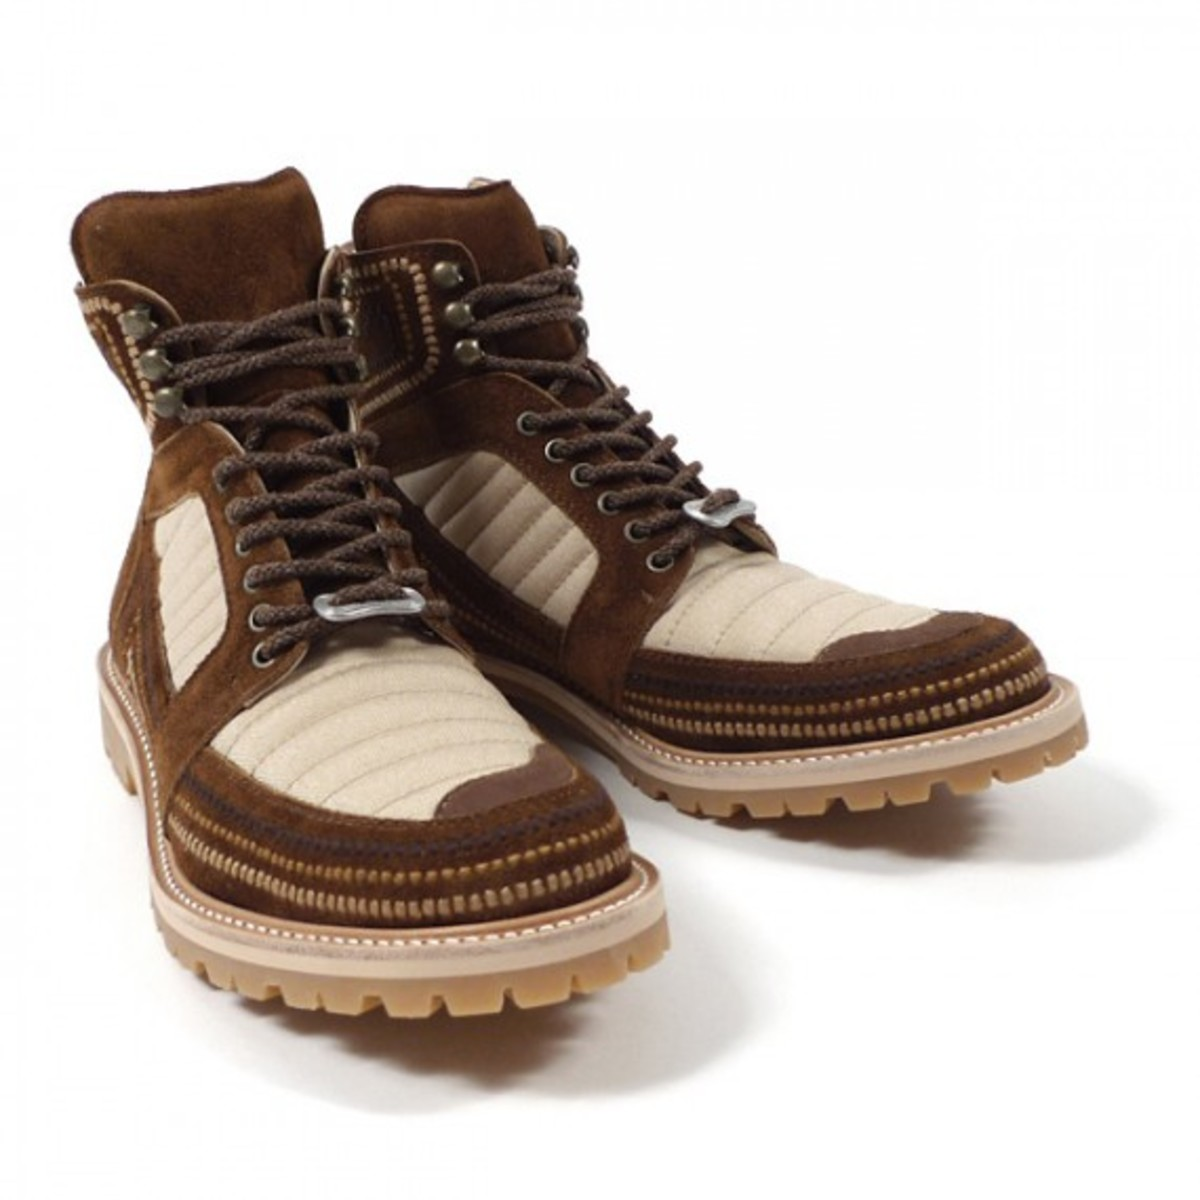 embroidered-mountain-boots-02